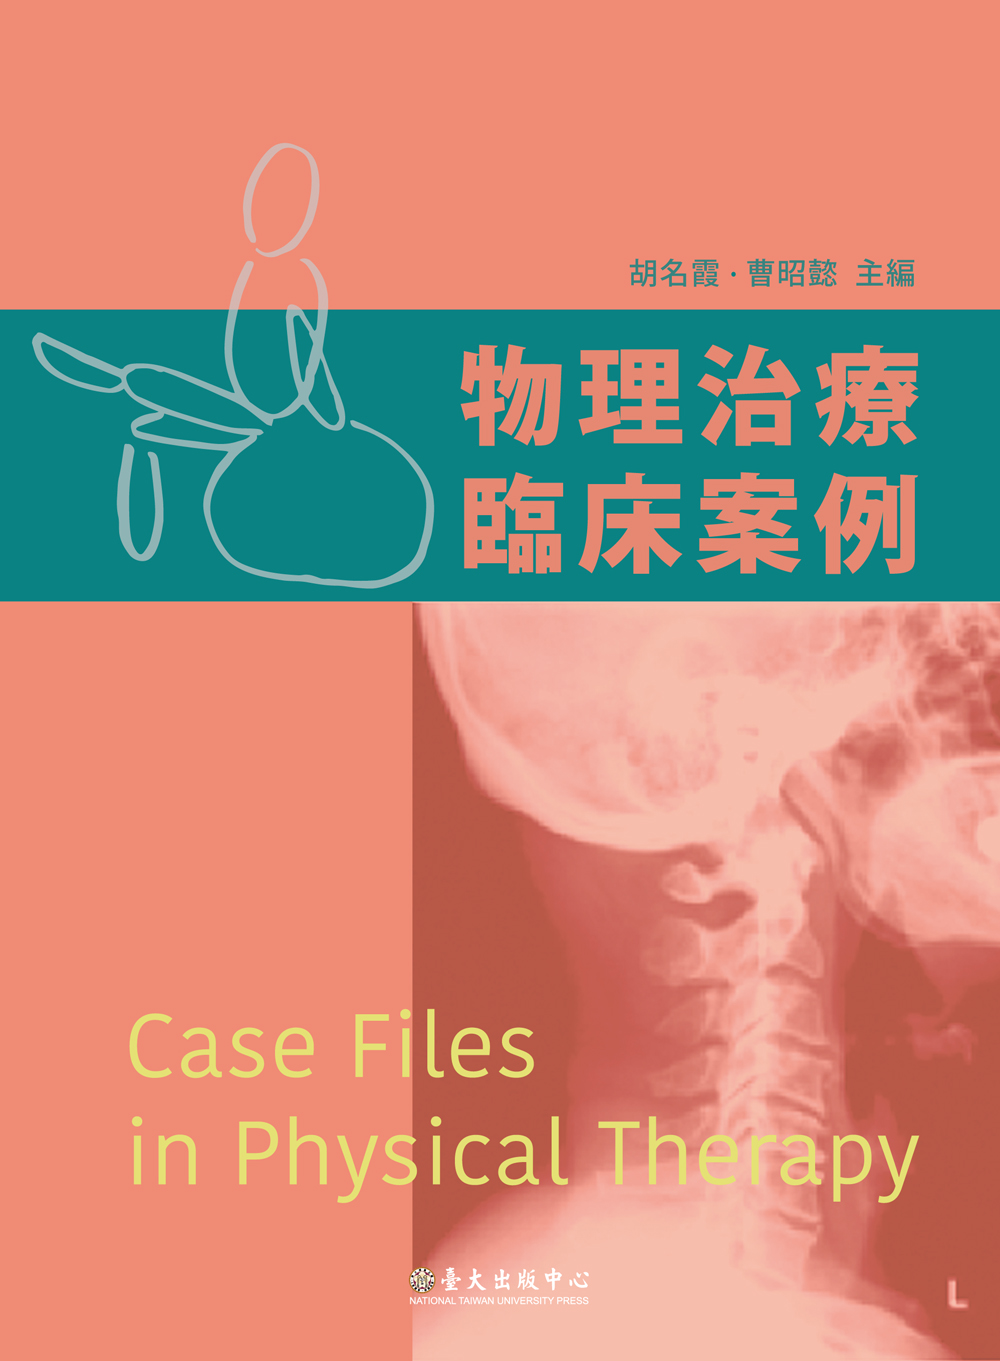 Case Files in Physical Therapy